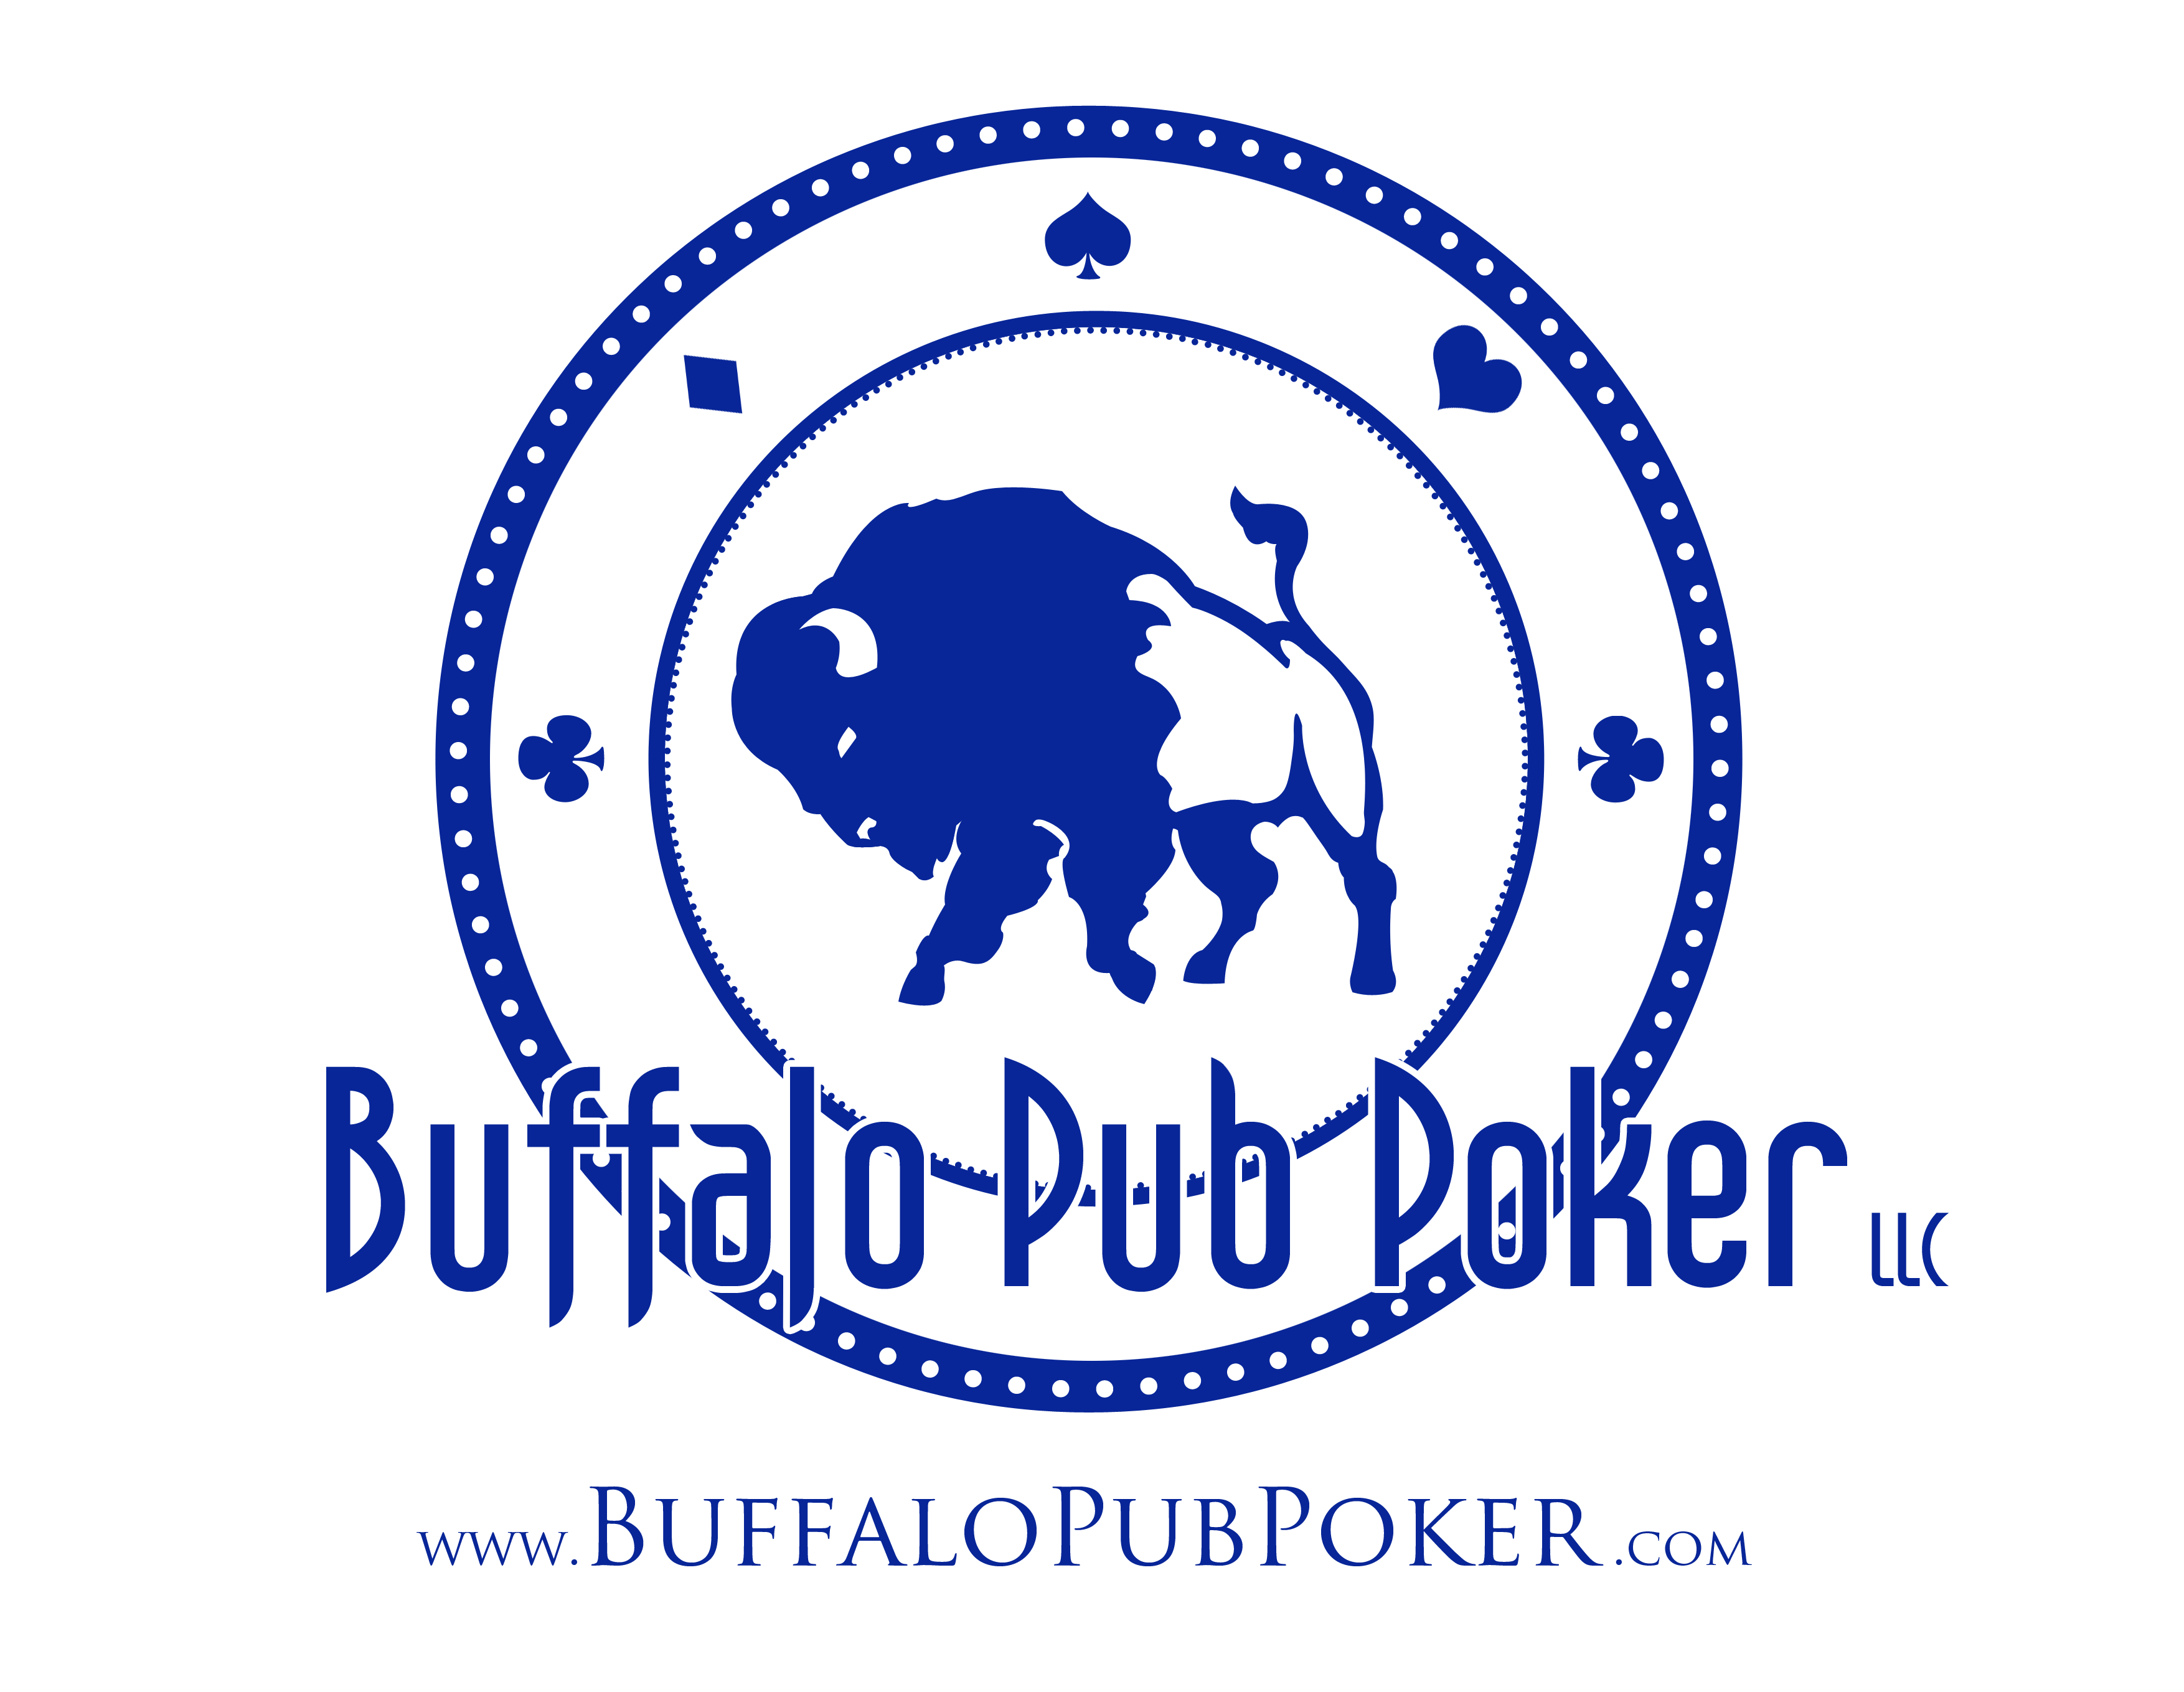 Buffalo Pub Poker logo